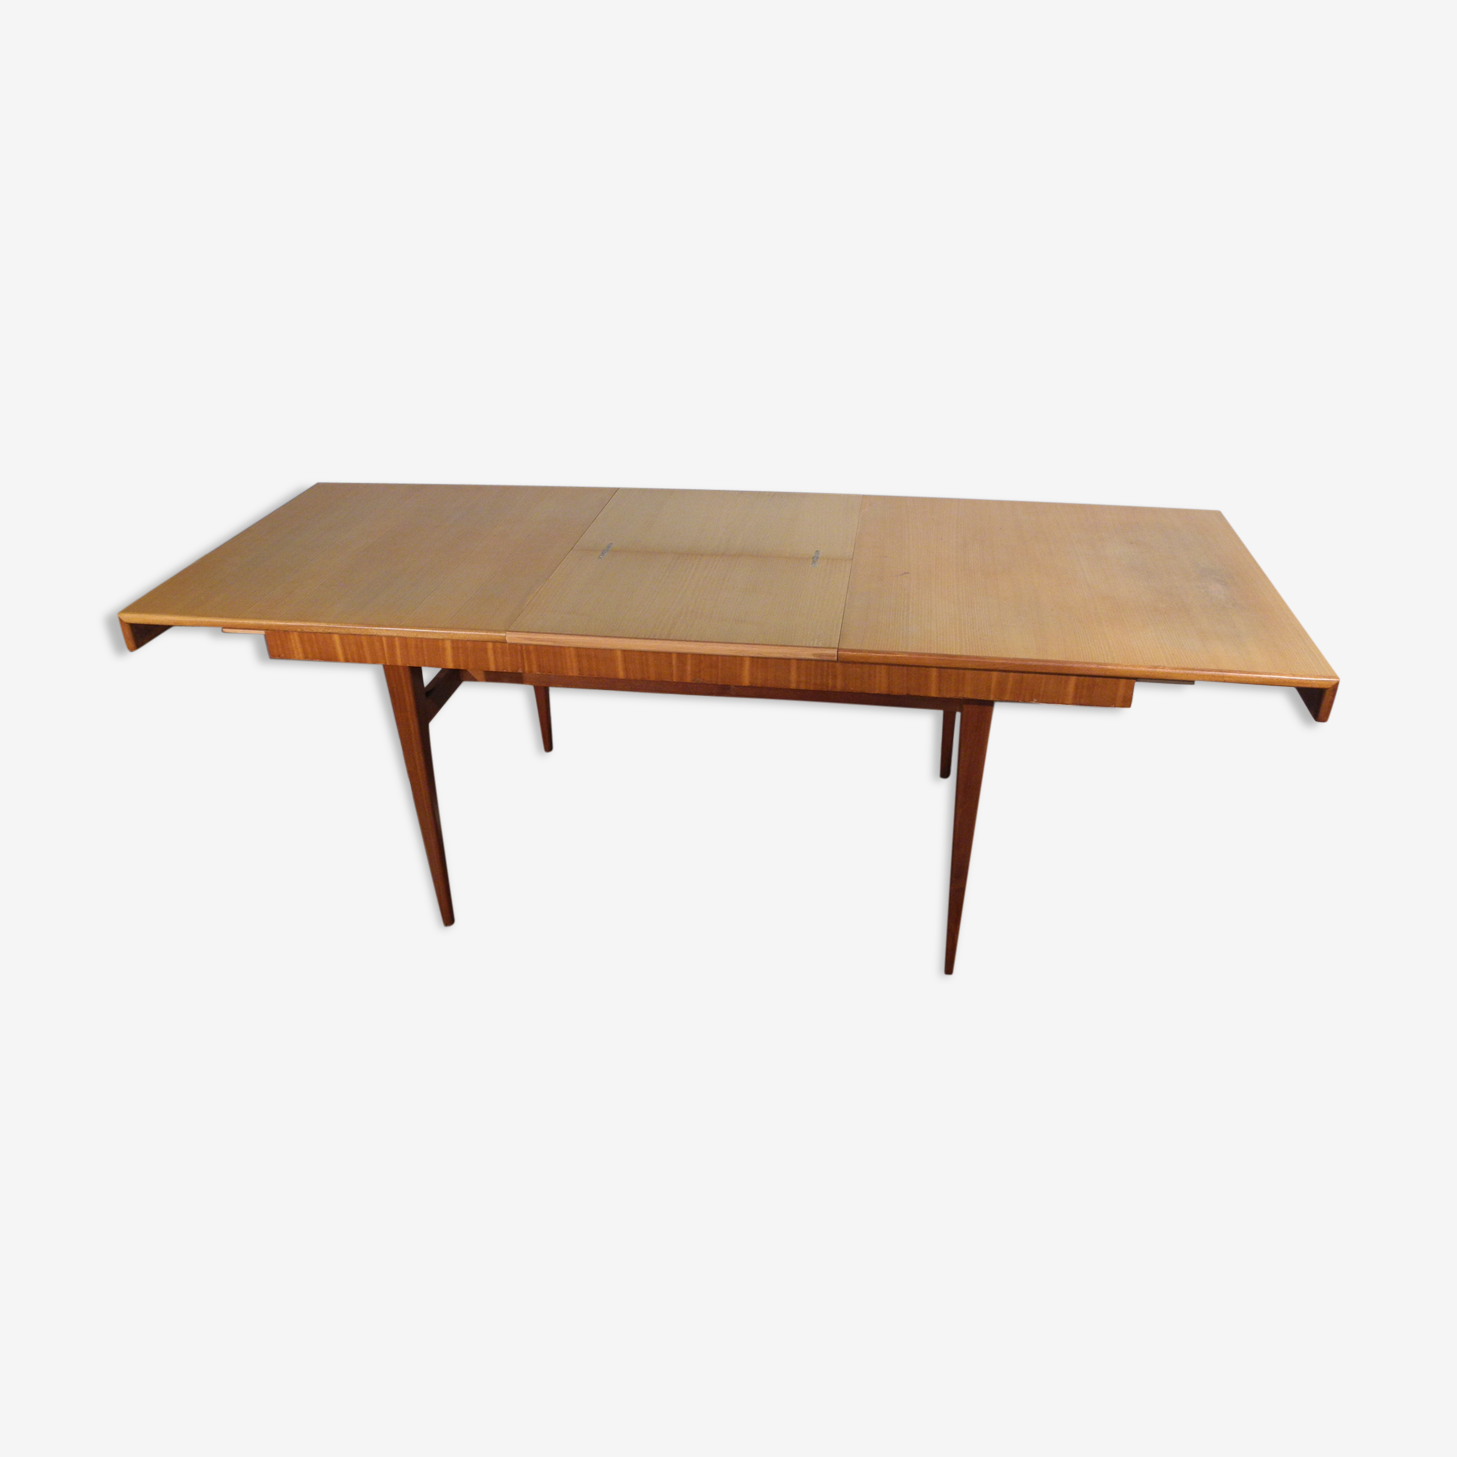 Dining table dating from the 1950-1960's